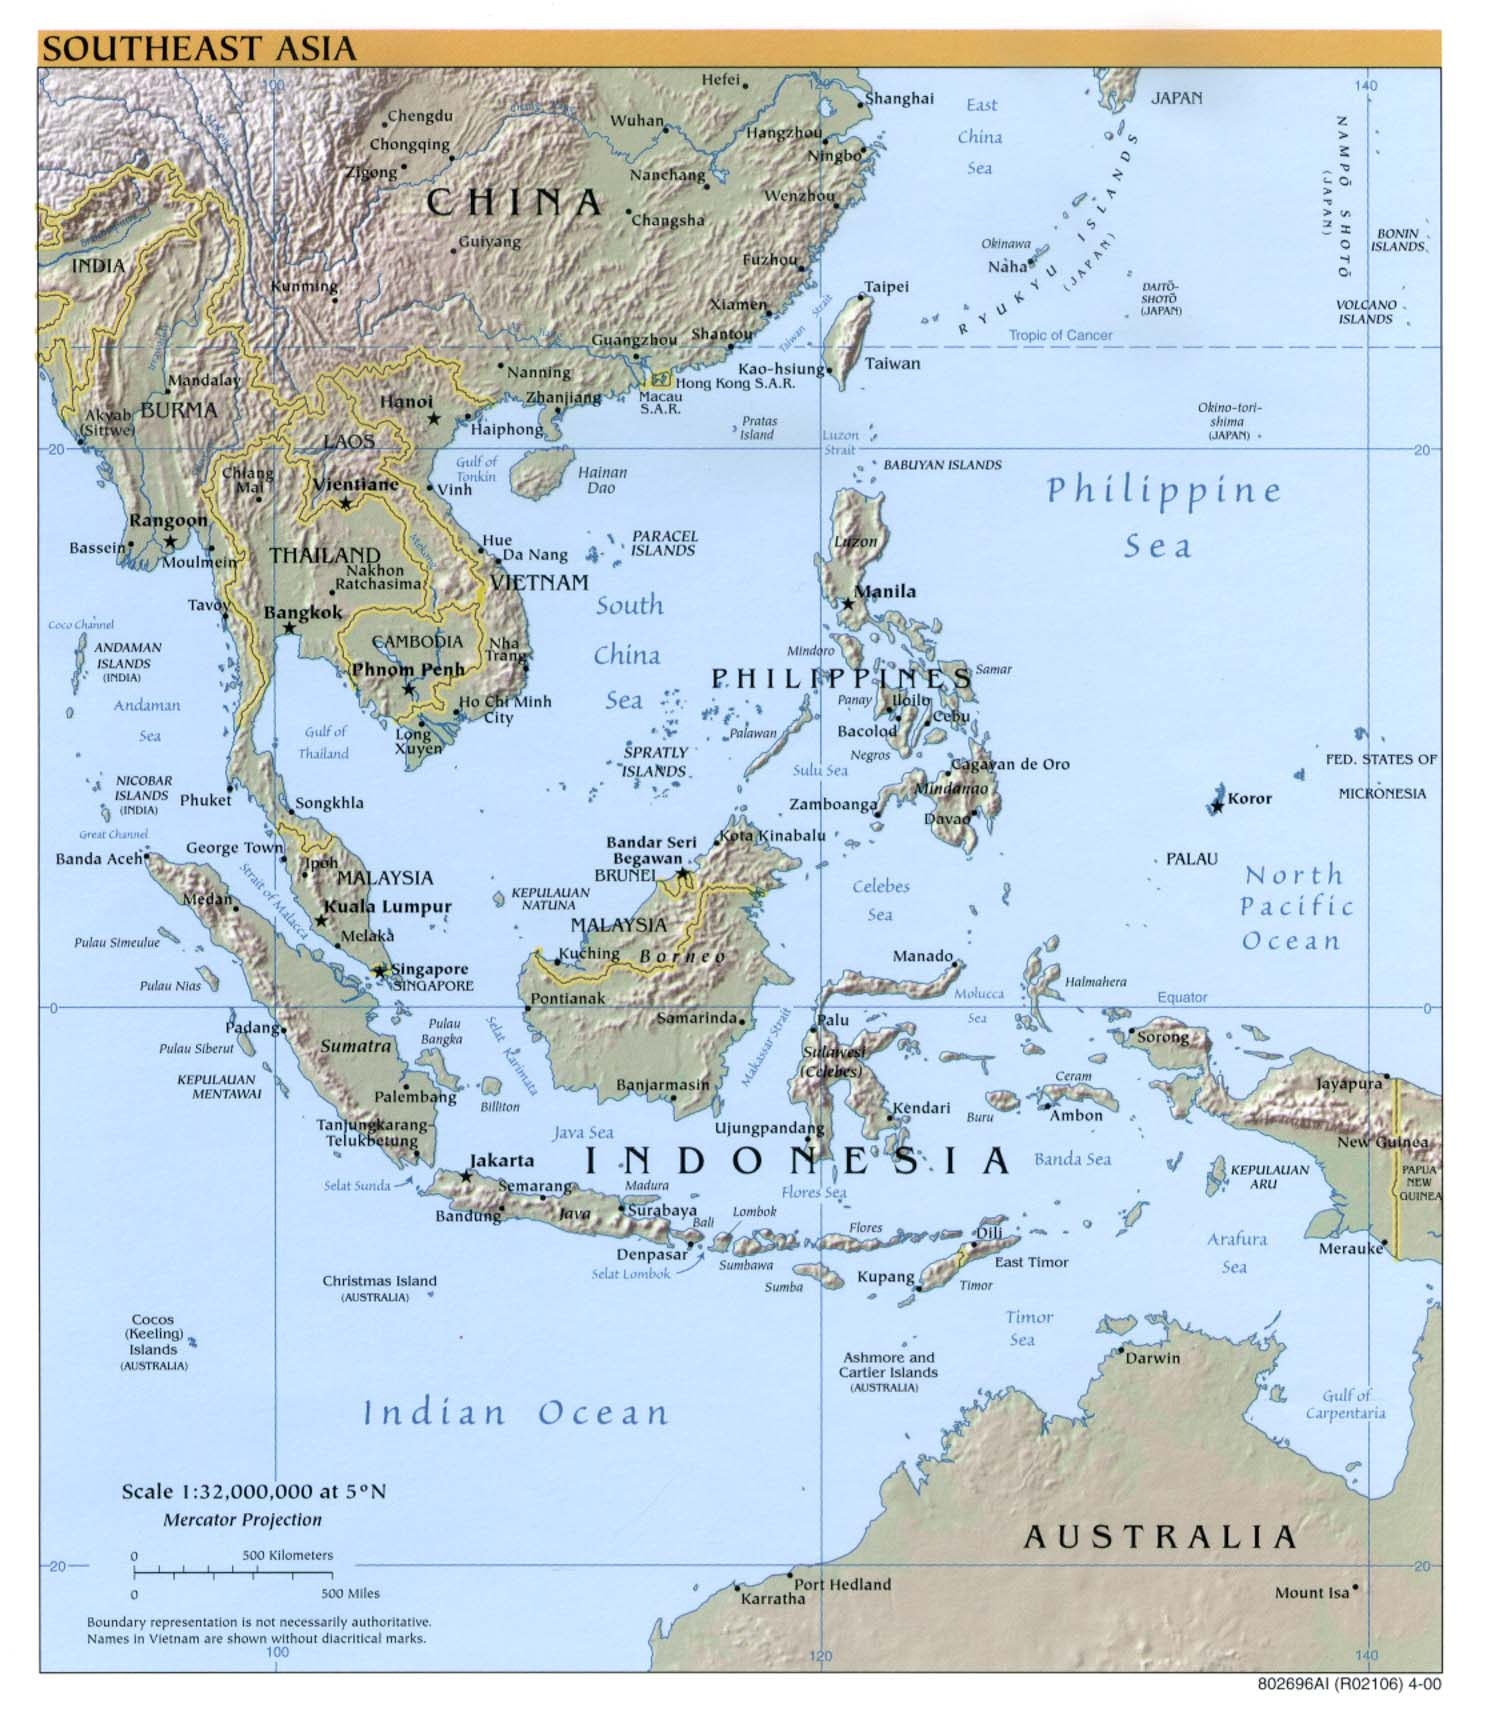 Southeast Asia physical map 2000